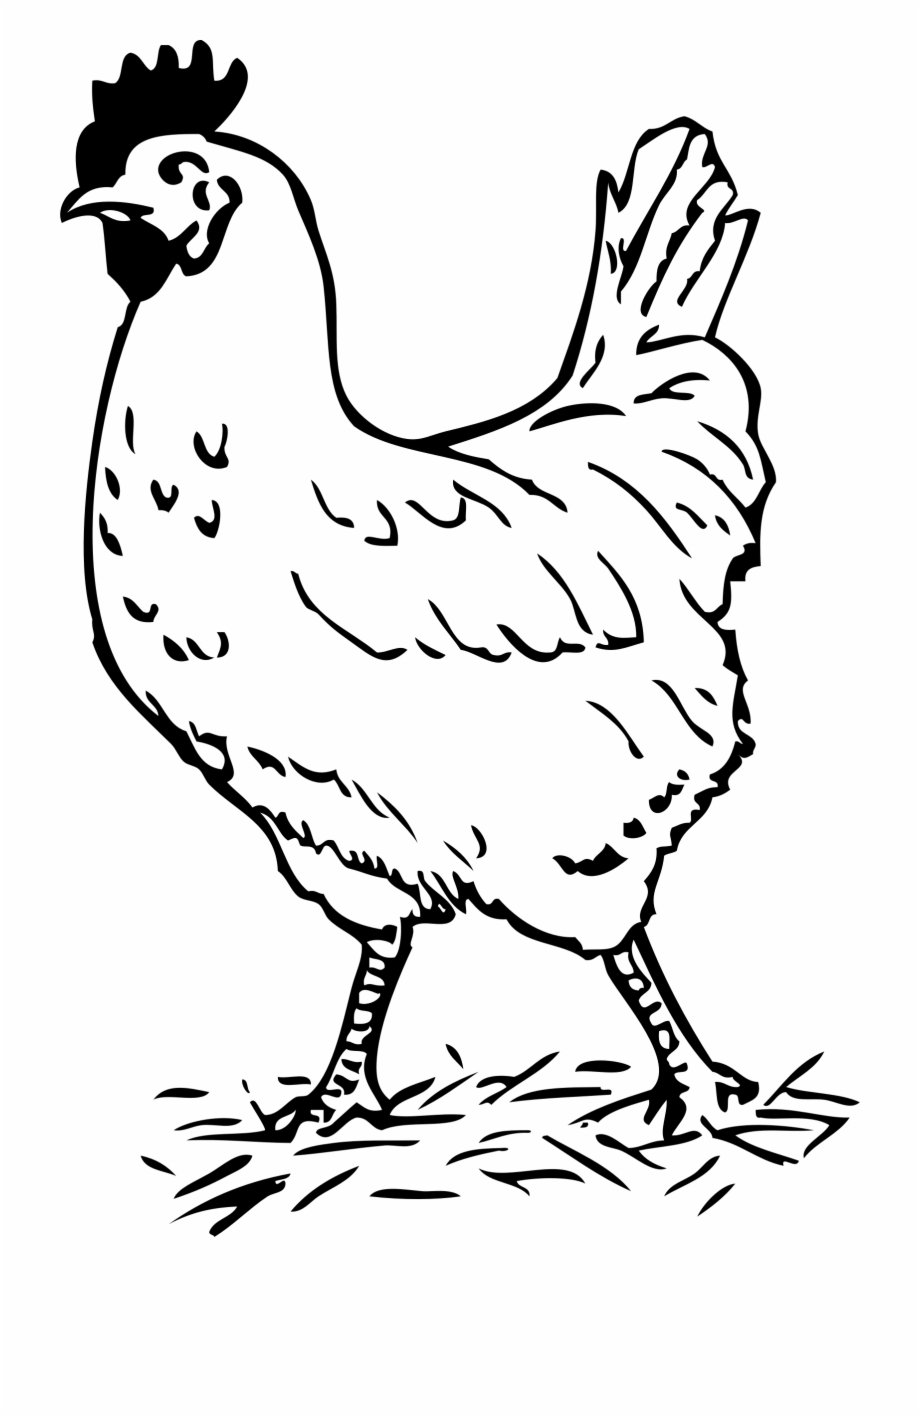 Free chicken clipart black and white pictures clip art Clipart Black And White Chicken - Hen Black And White Free PNG ... clip art